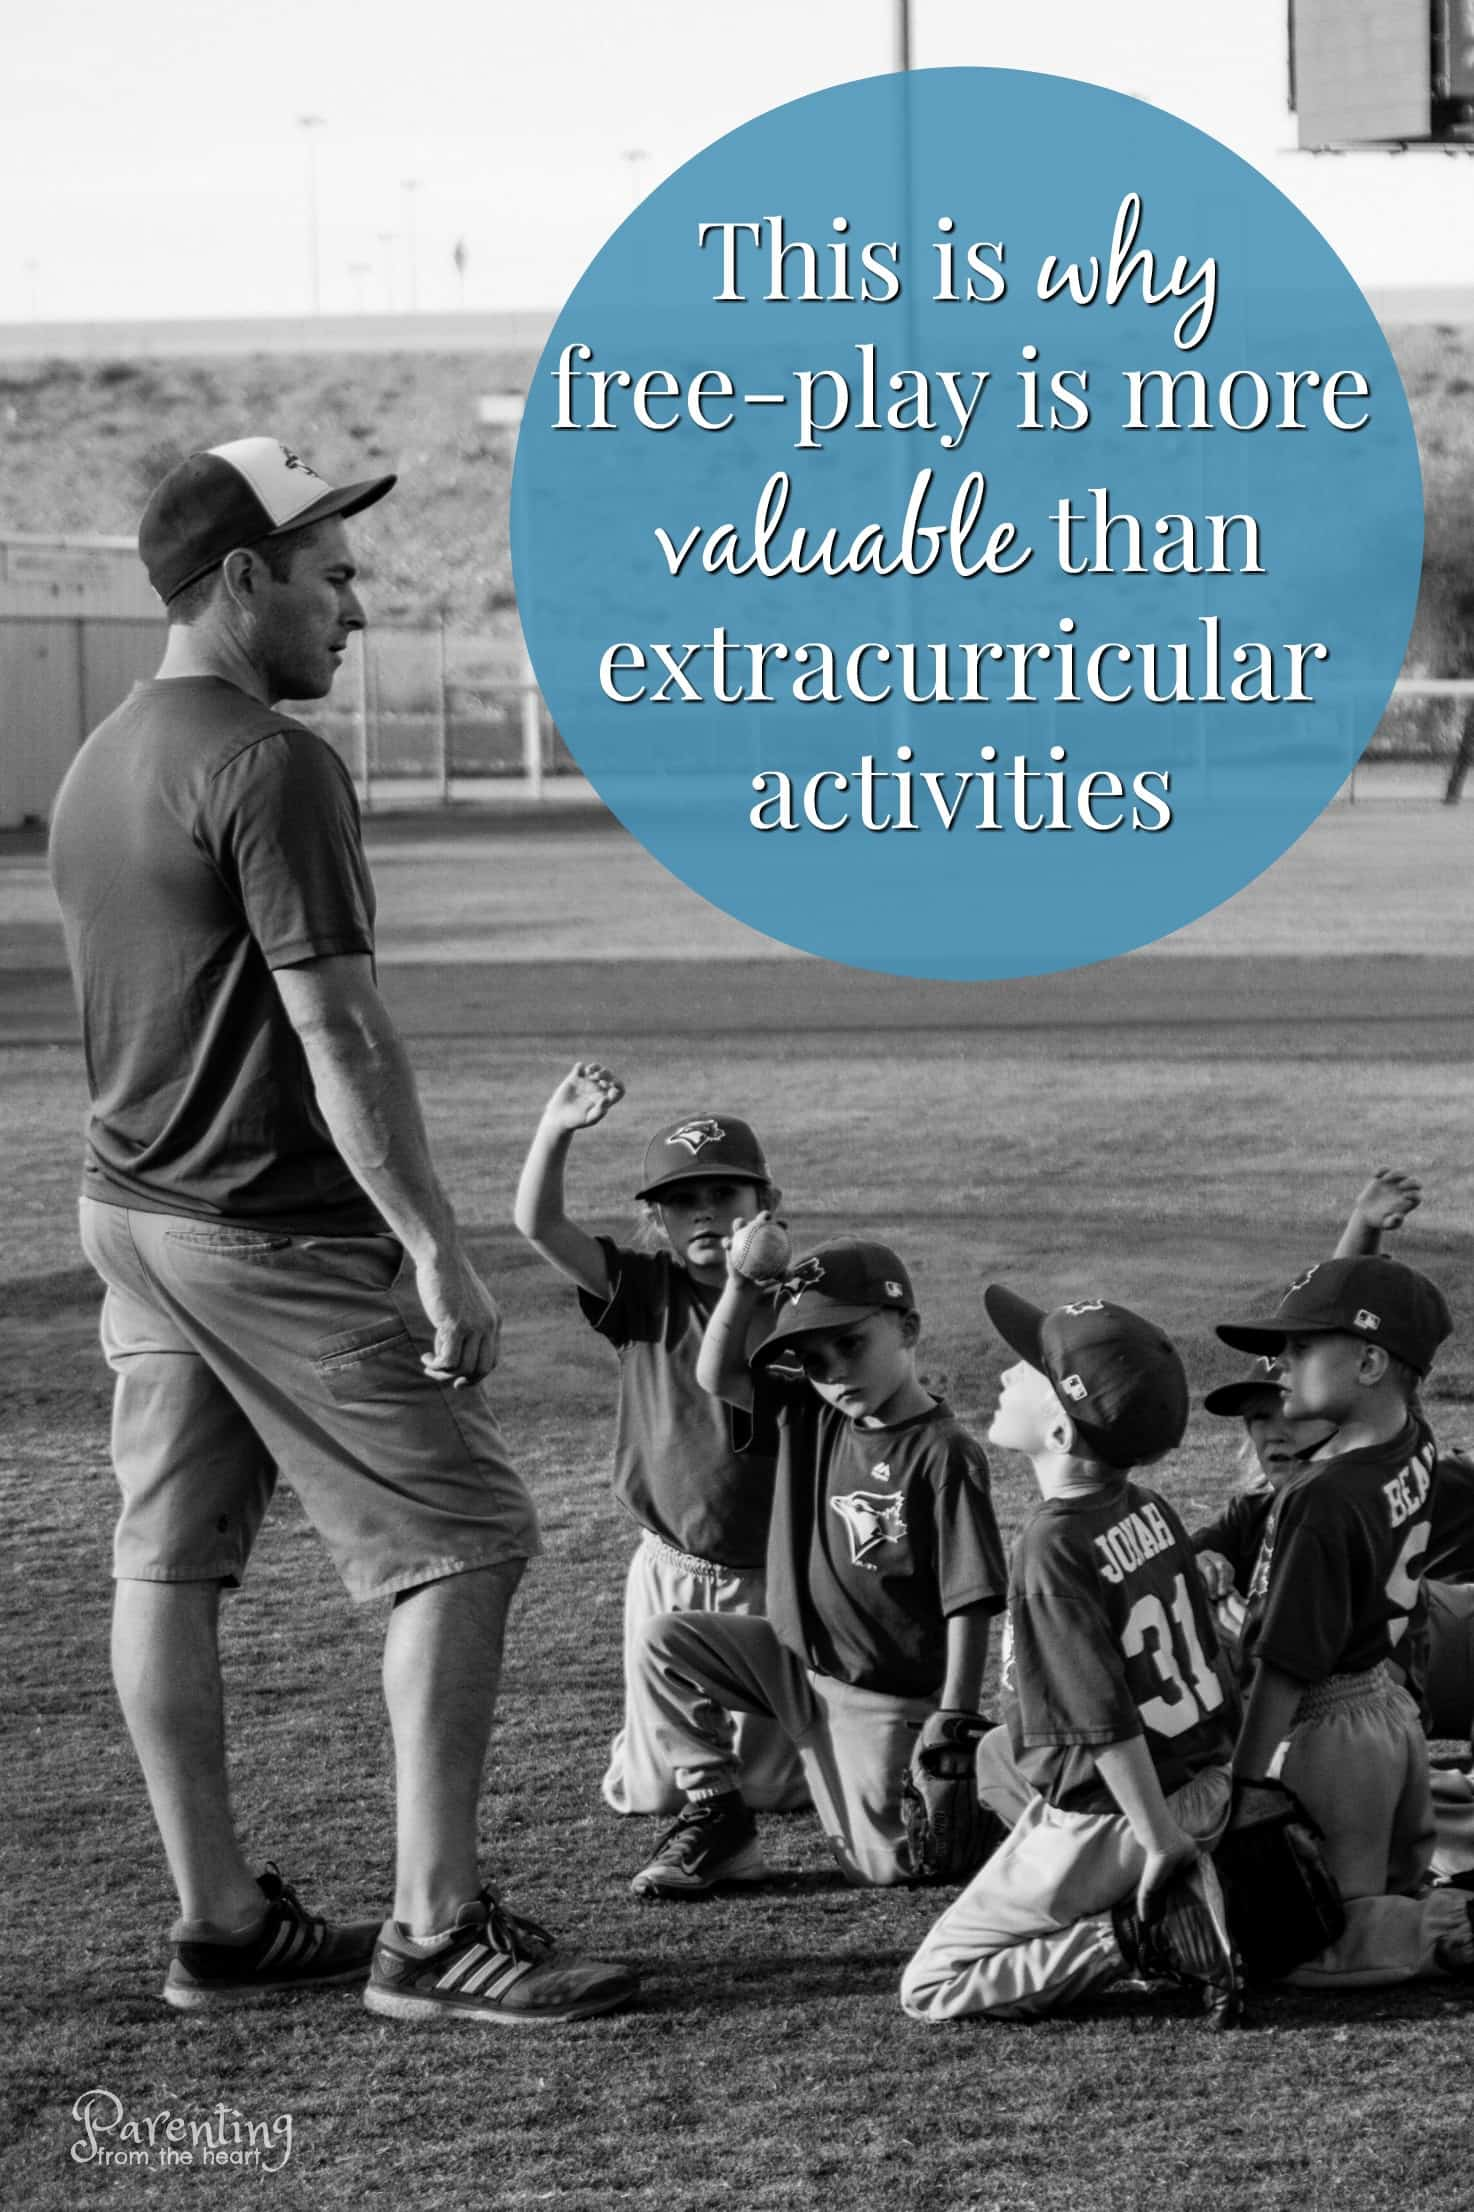 When summer hits, naturally parents want to avoid the summer slide. We want to schedule enough summer activities so that our children are challenged and go back to school ready. While all of this is done with the best of intentions, free play is more beneficial than most of these extracurricular activities for kids. This is why. #parenting #kidsactivities #extracurricularactivites #activities #summer #summertime #parentingfromtheheart #playbasedlearning #learningthroughplay